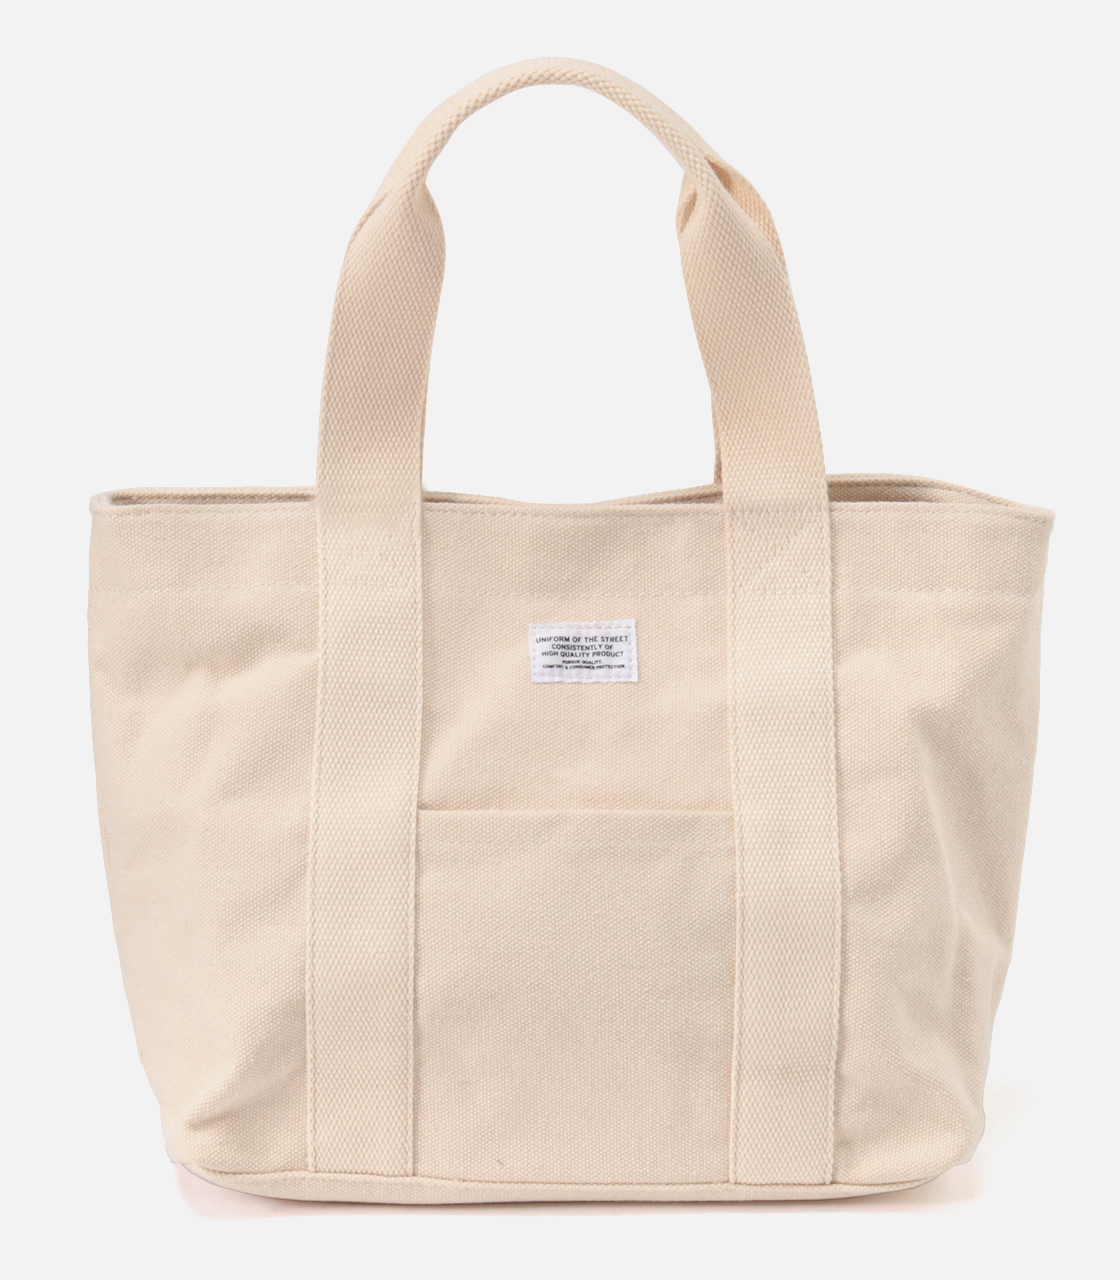 CAMPUS MINI TOTE BAG/キャンバスミニトートバッグ 詳細画像 IVOY 1